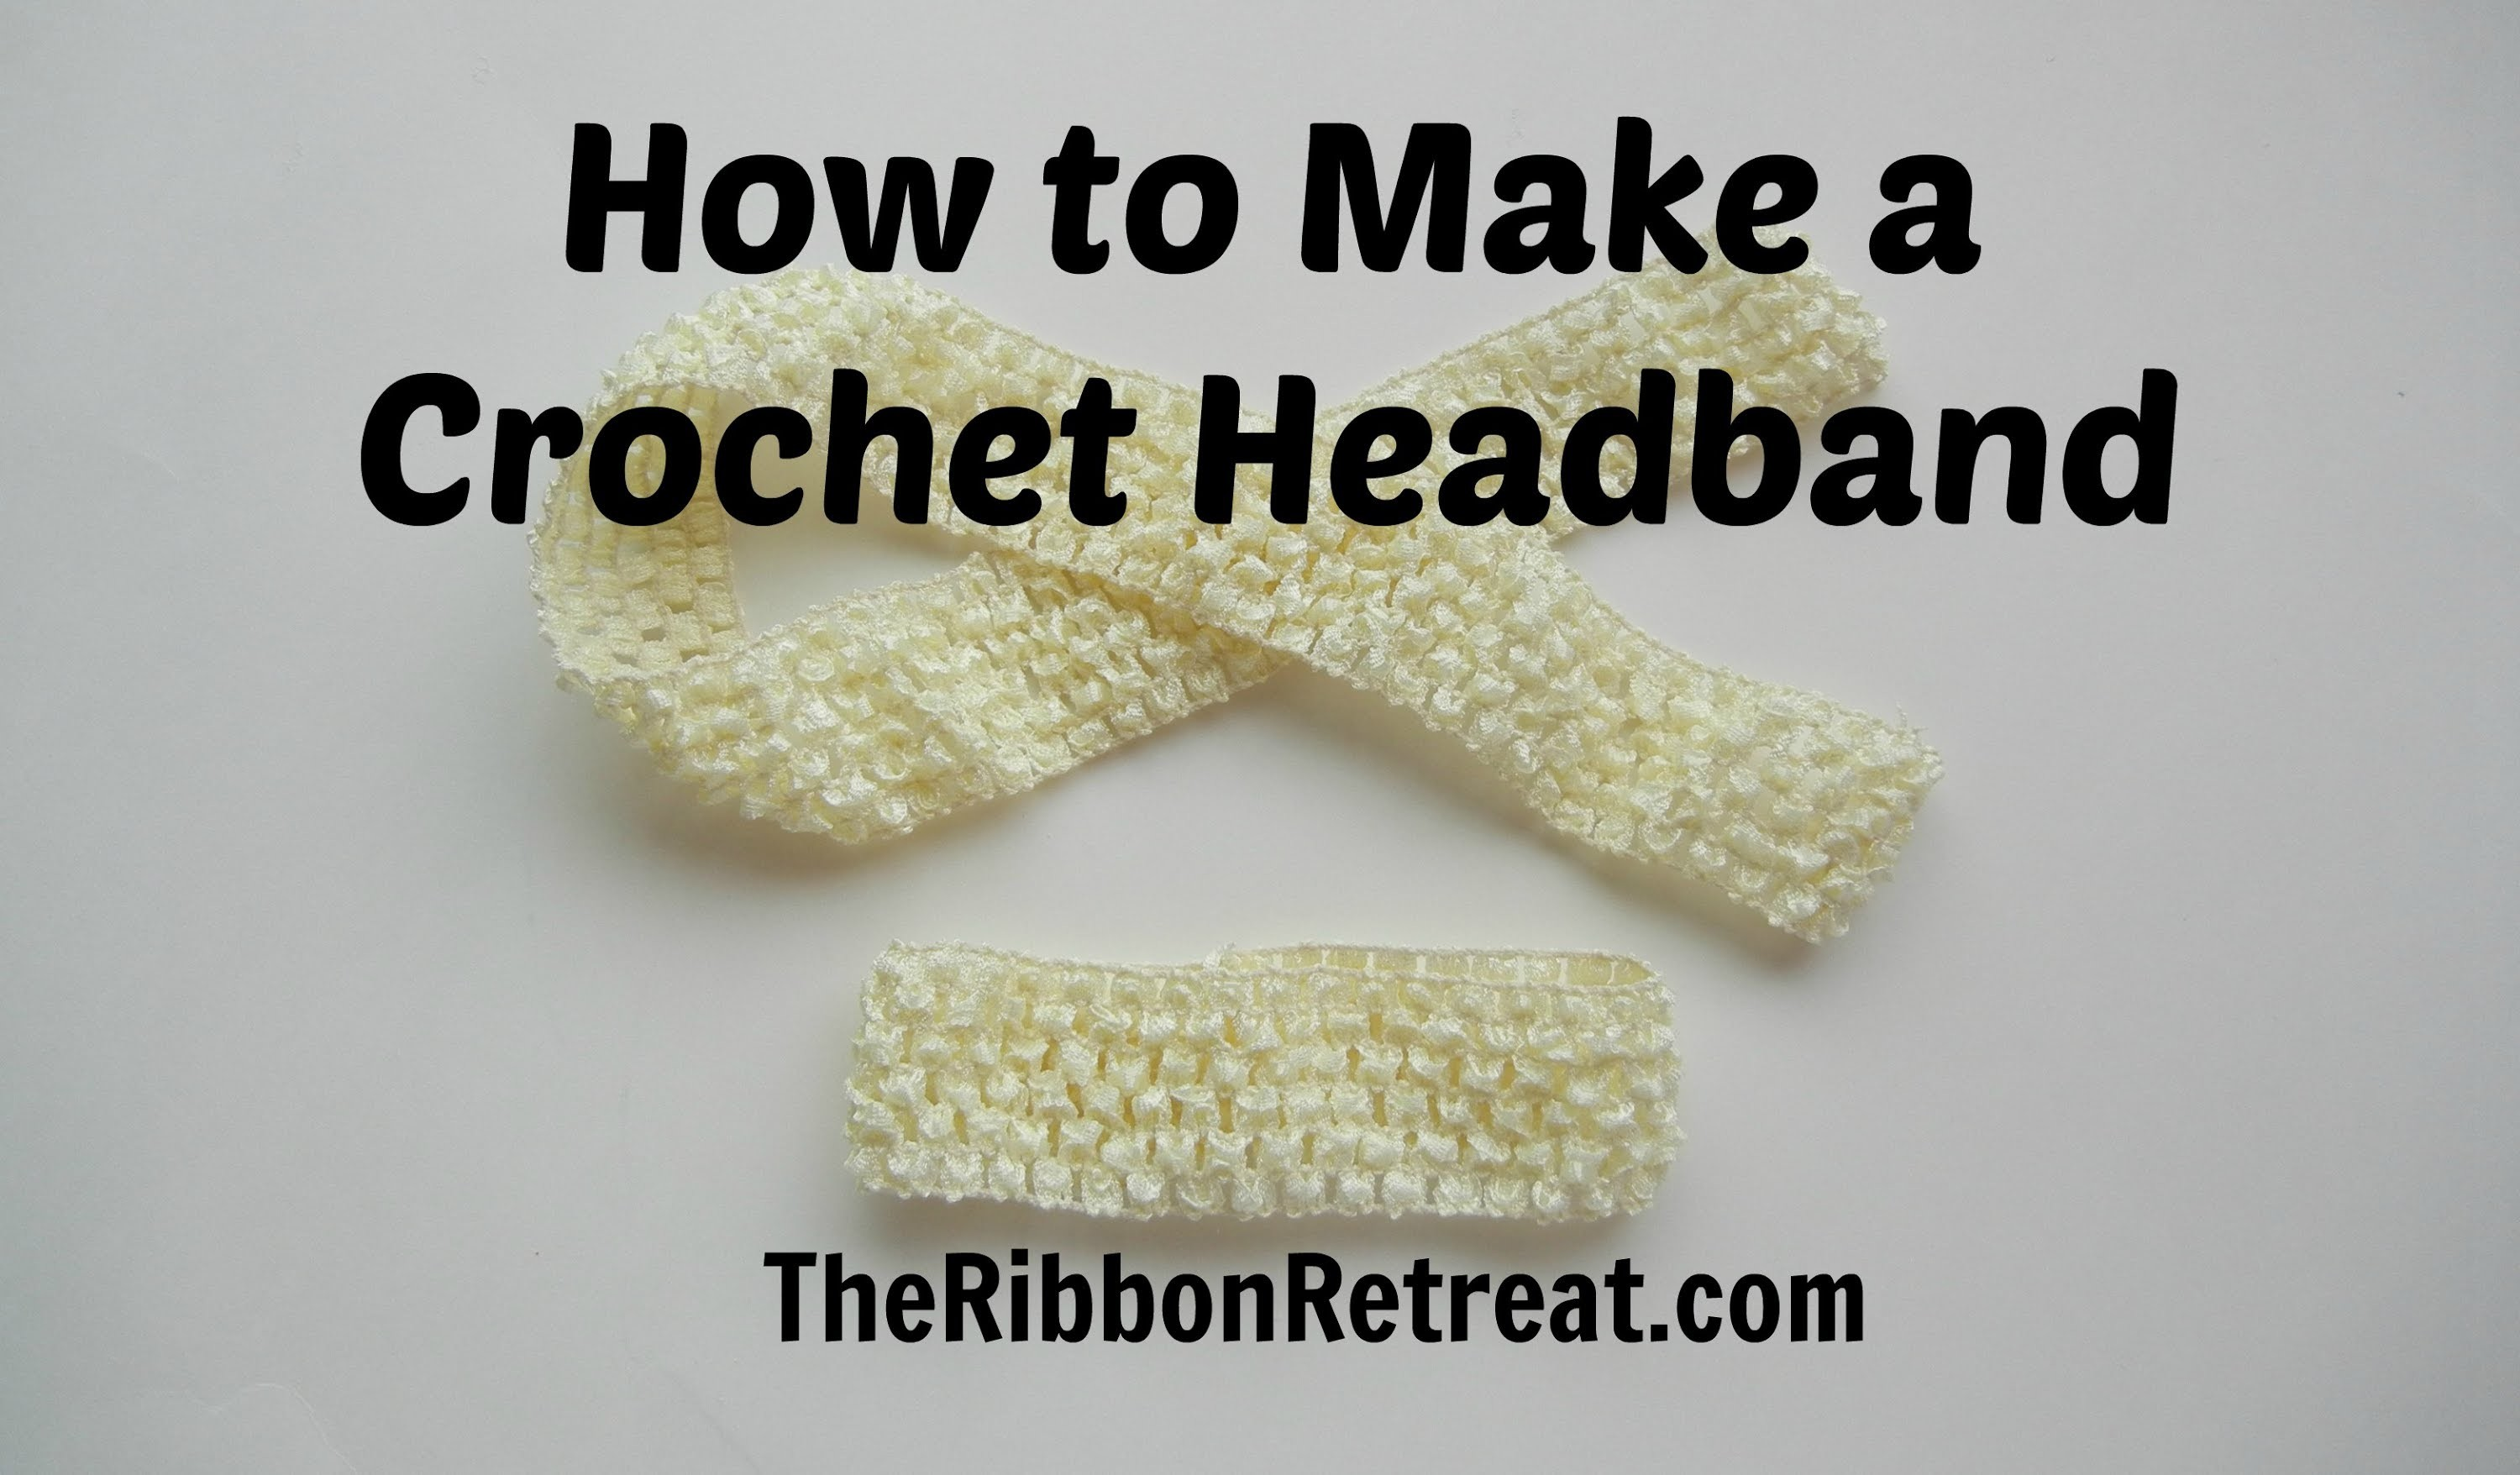 How to Make a Crochet Headband - TheRibbonRetreat.com